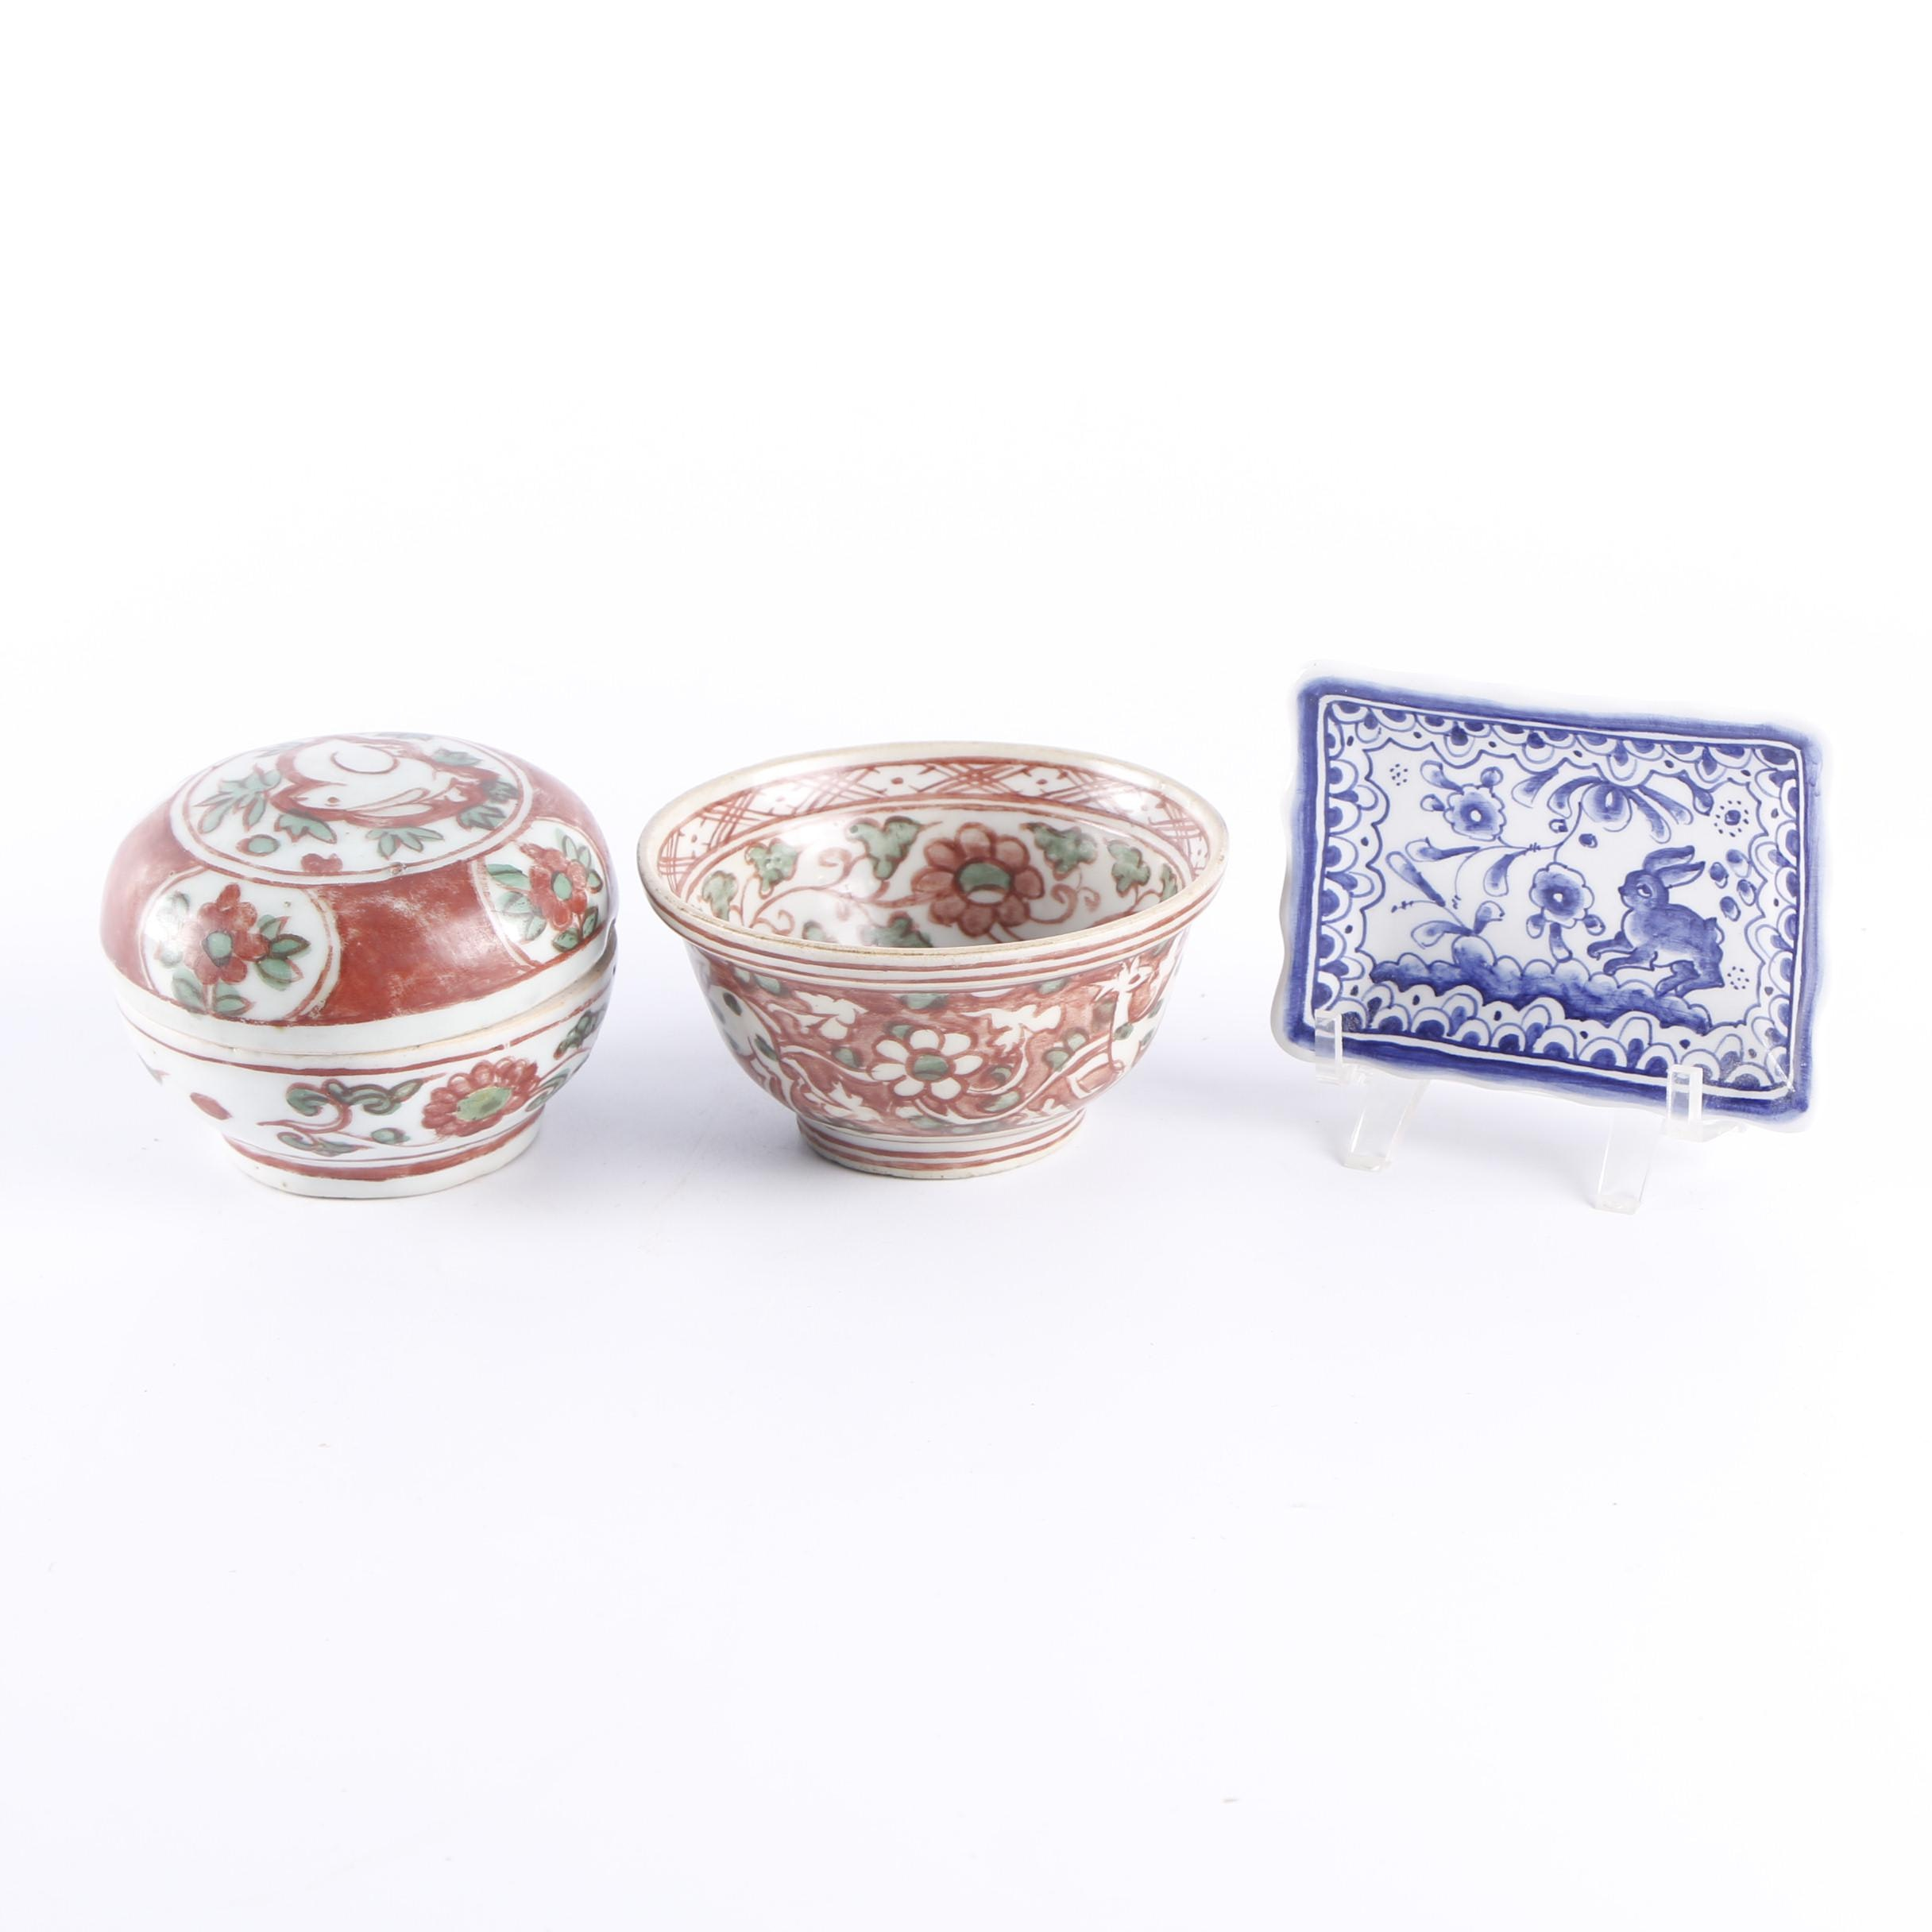 Hand-Painted Chinese Bowls and Portuguese Trinket Tray